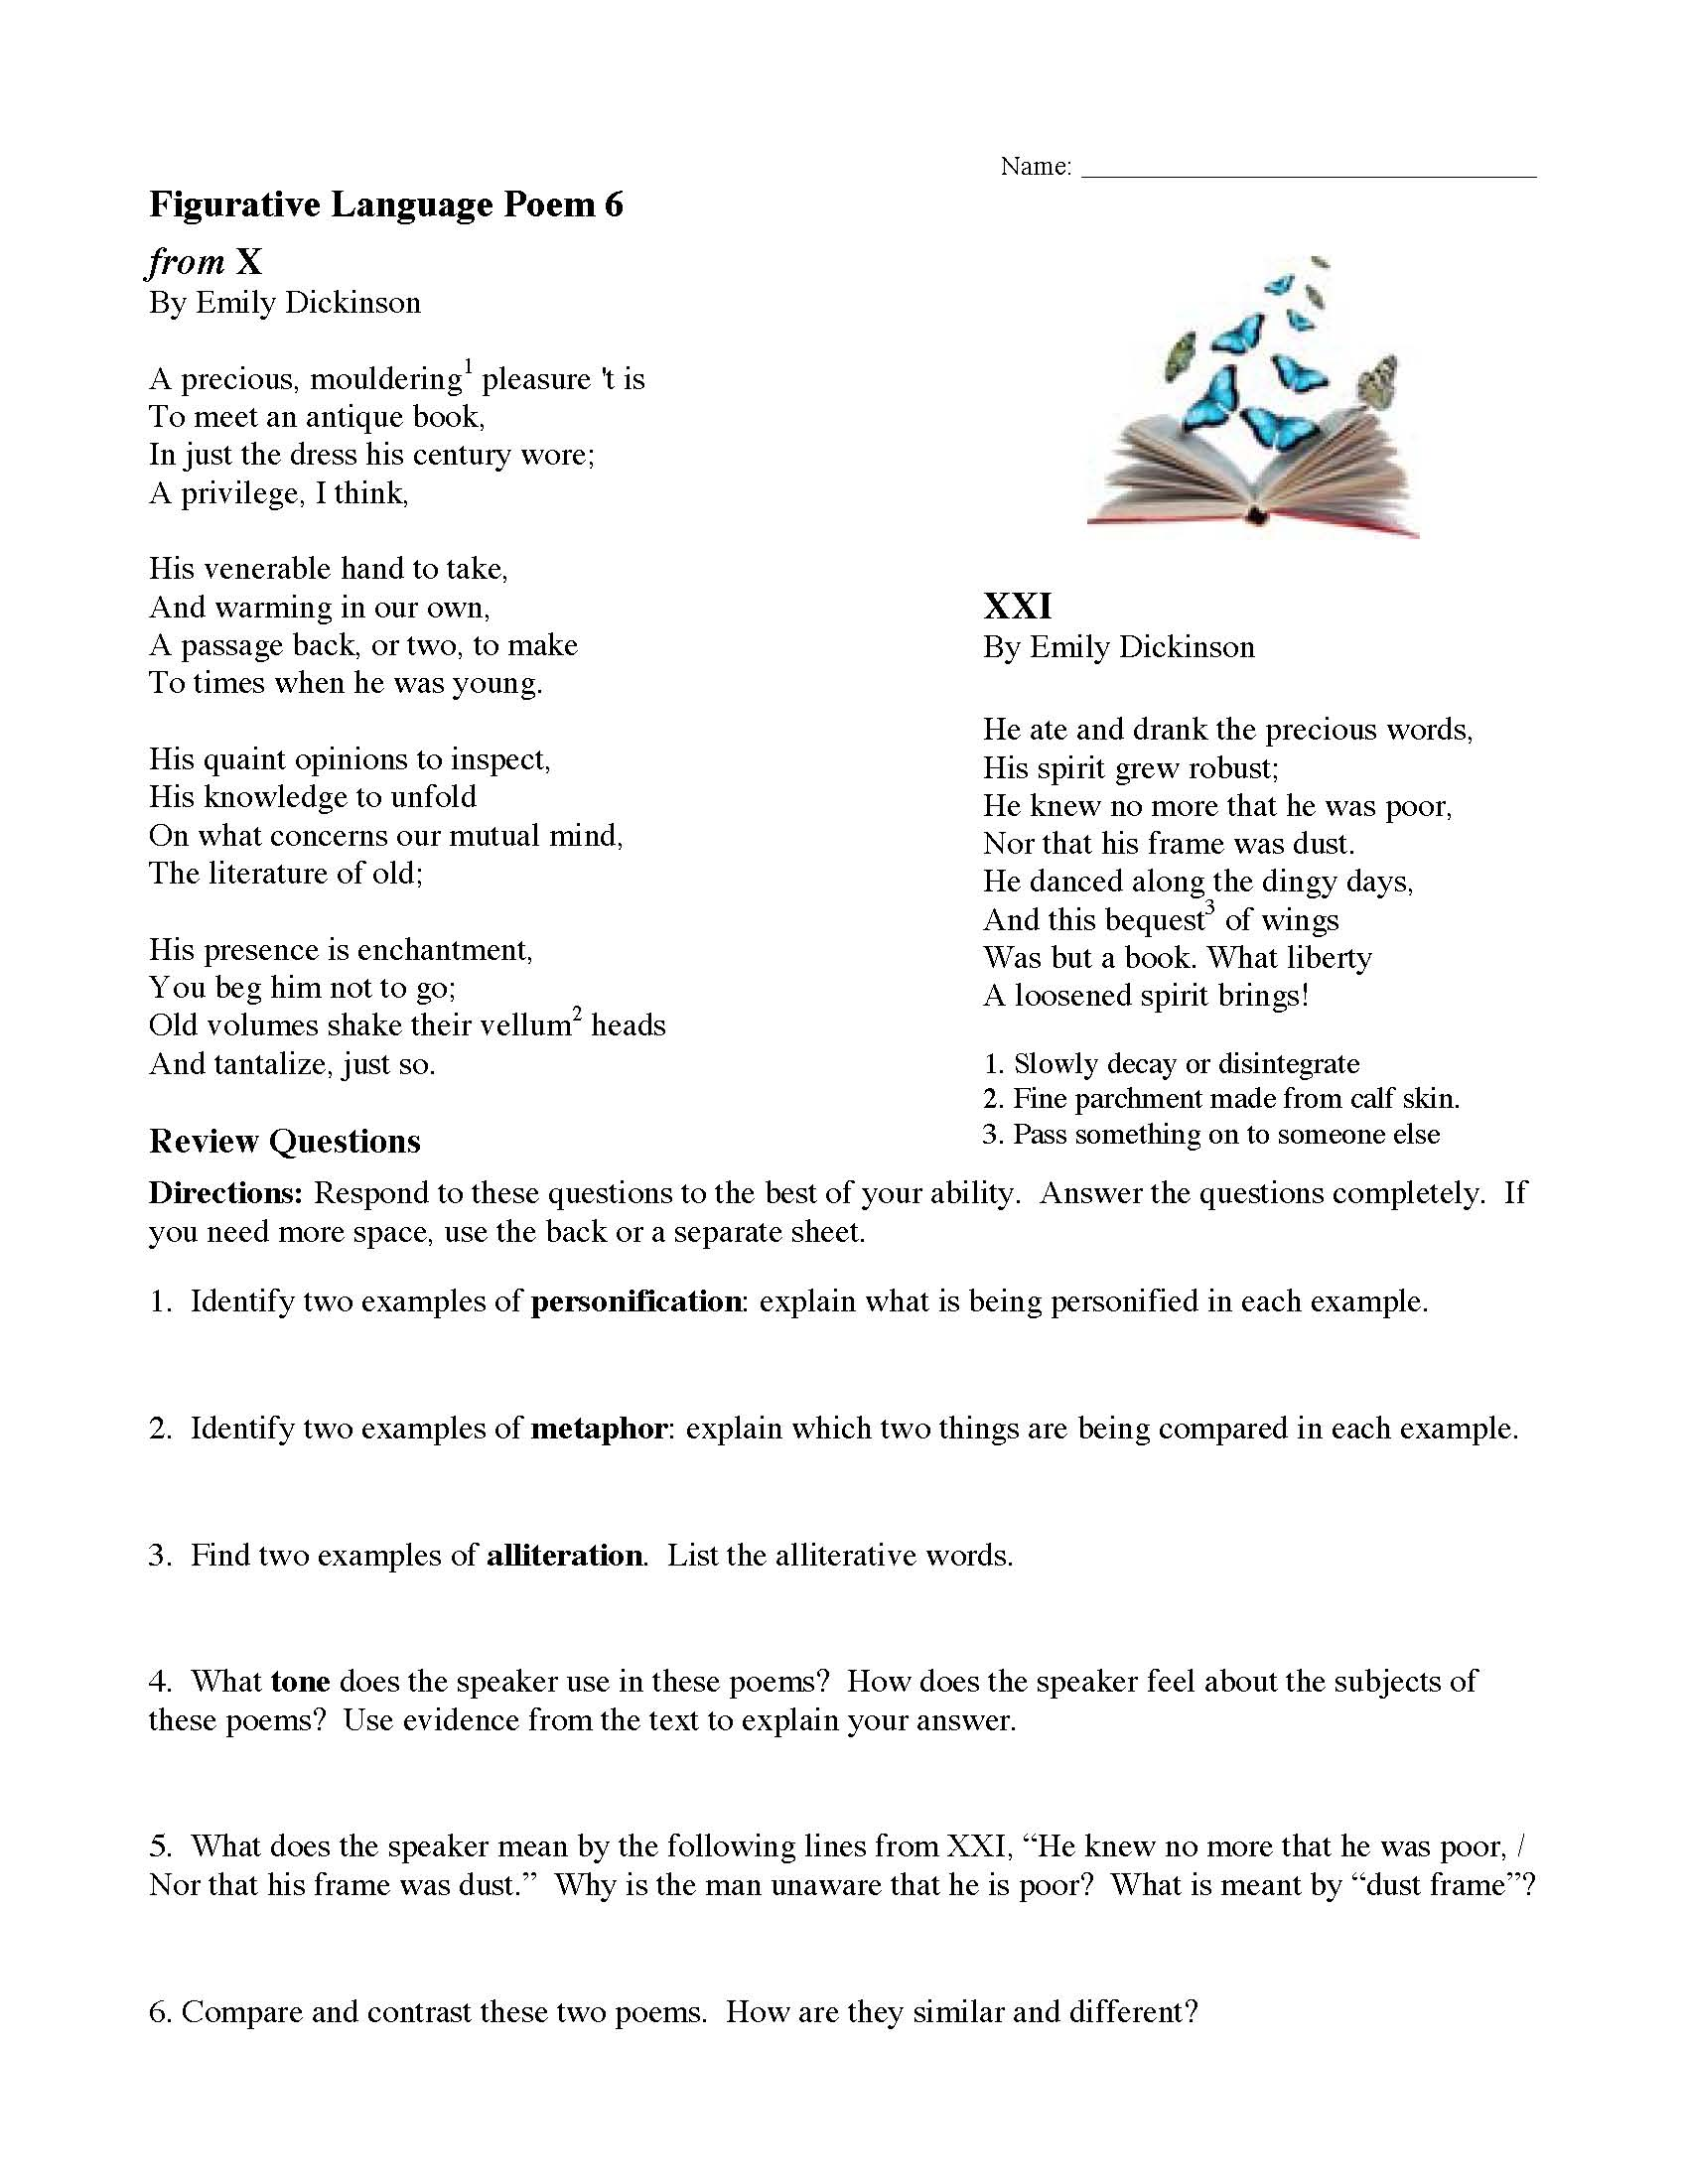 hight resolution of Figurative Language Poem 6: from X and XXI by Emily Dickinson   Preview